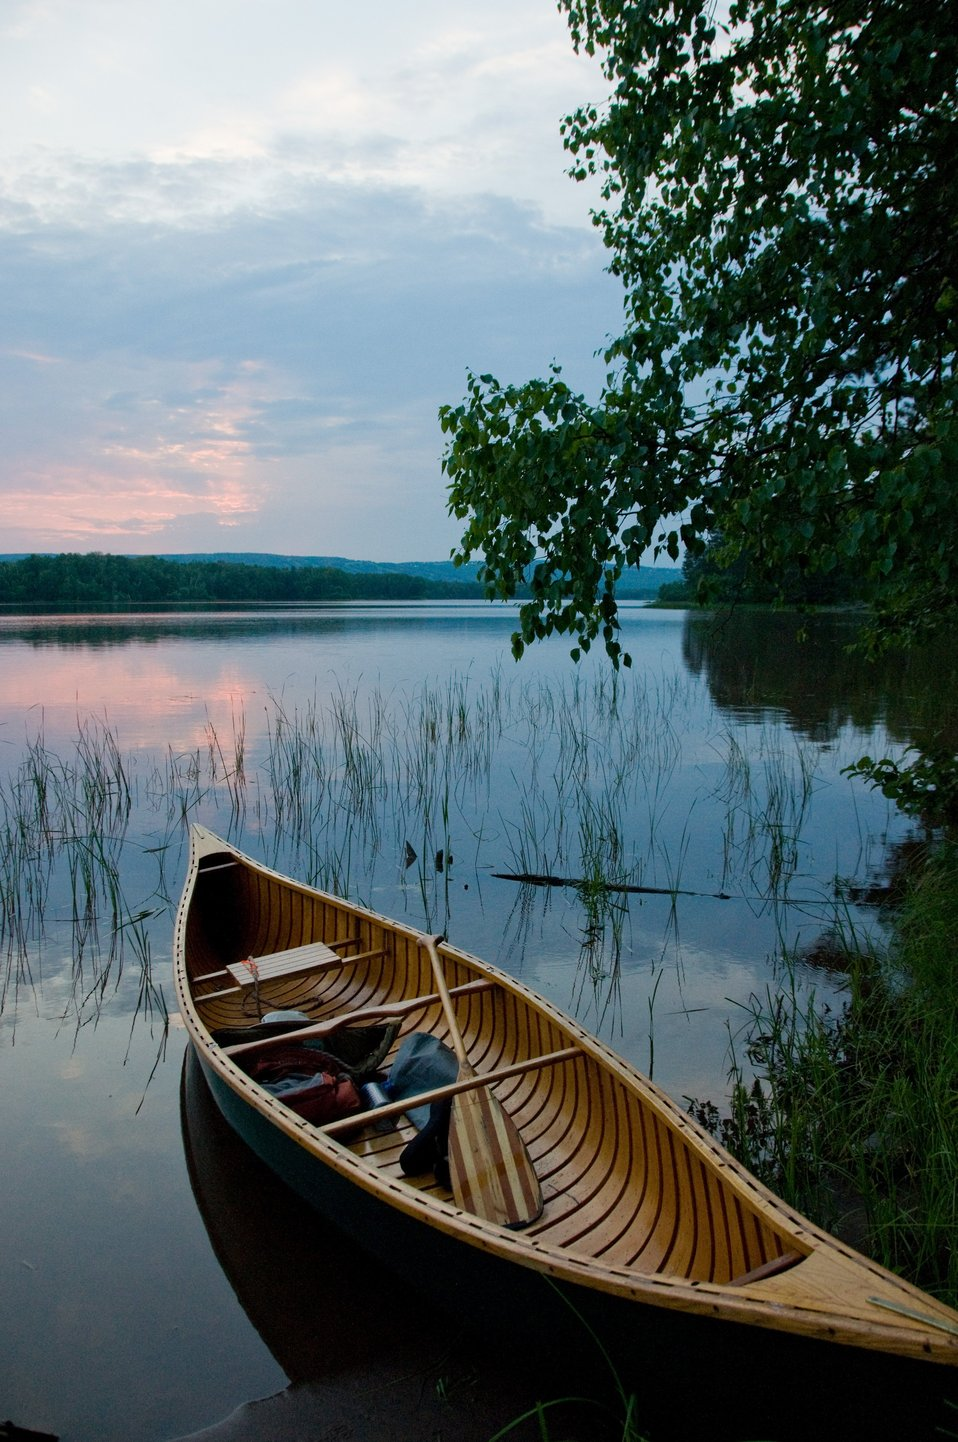 Canoeing in the serene waters of the St. Louis River in Wisconsin is one of the favorite recreational activities in the new Lake Superior National Estuarine Research Reserve, which was officially designated part of the National Estuarine Research Reserve